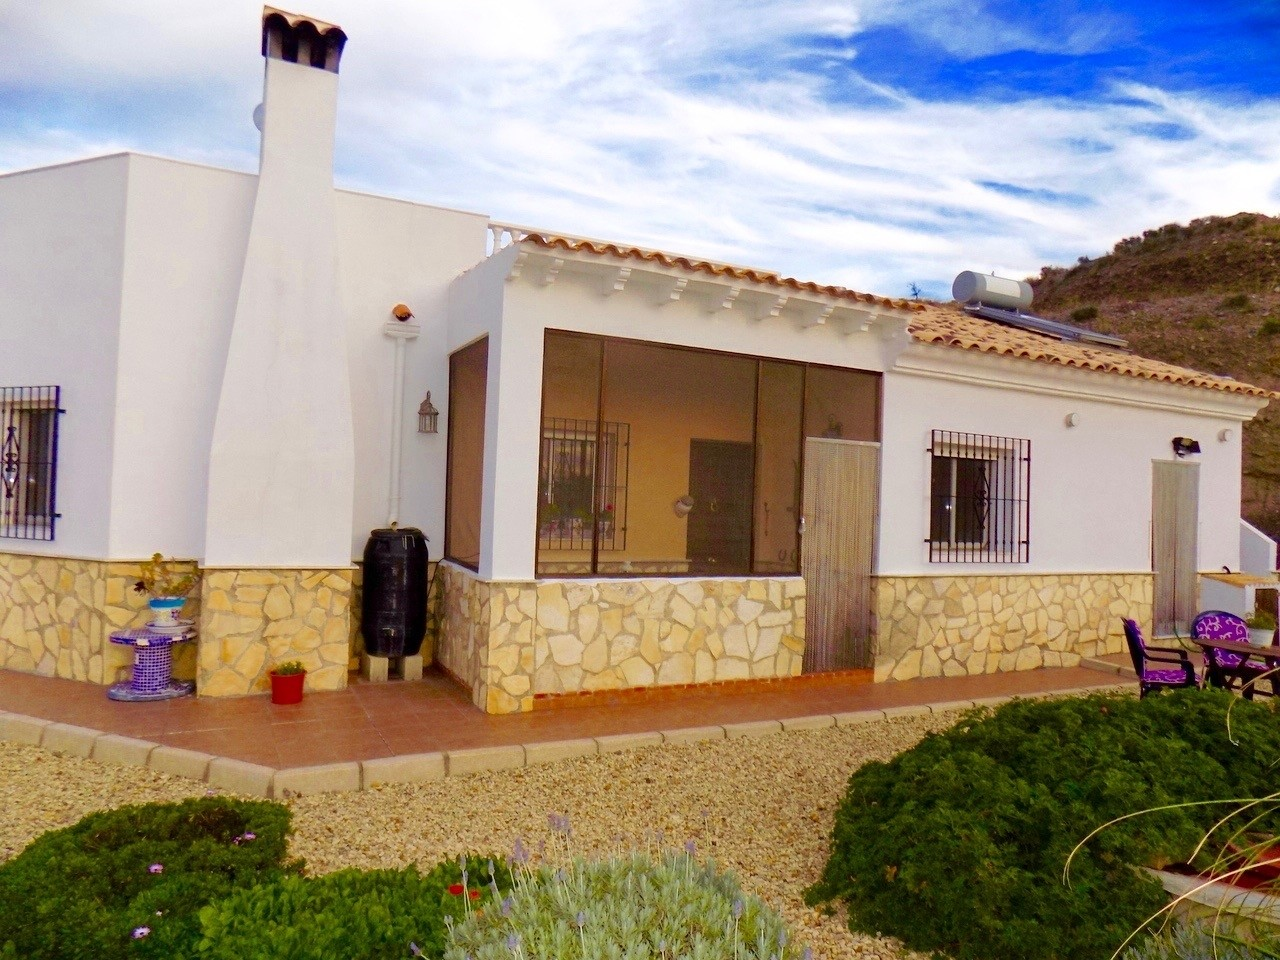 Propery For Sale in Huércal-Overa, Spain image 0